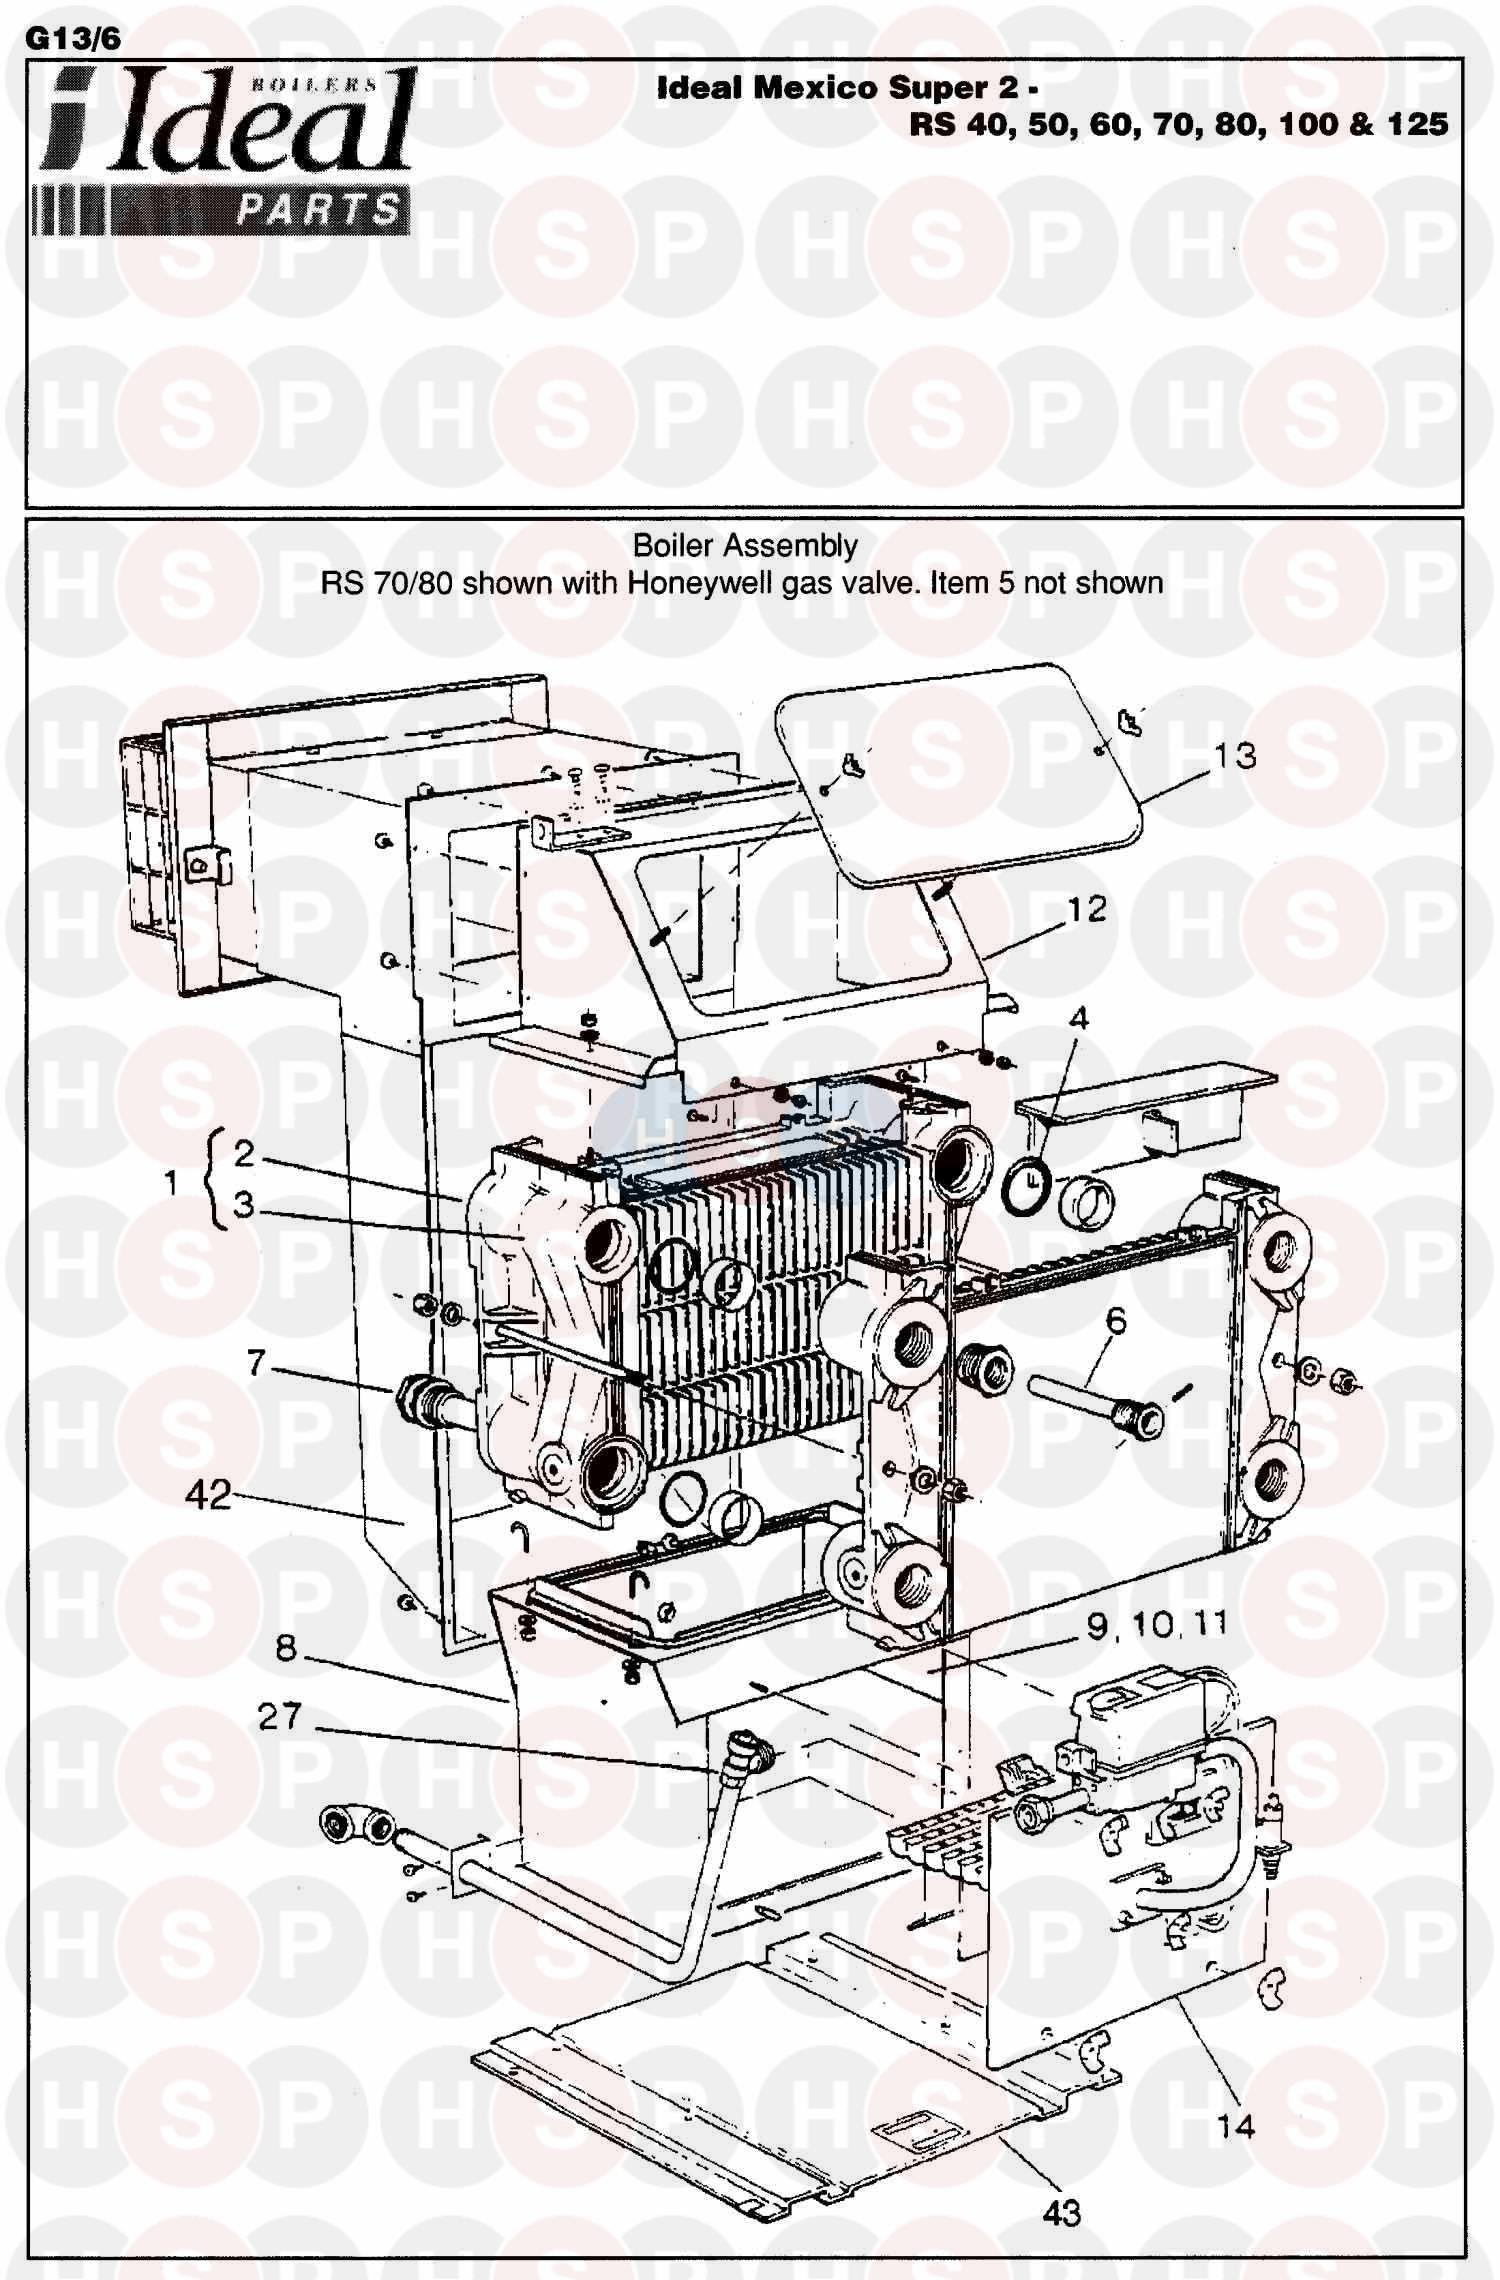 Ideal MEXICO SUPER 2 RS 60 (BOILER ASSEMBLY 1) Diagram